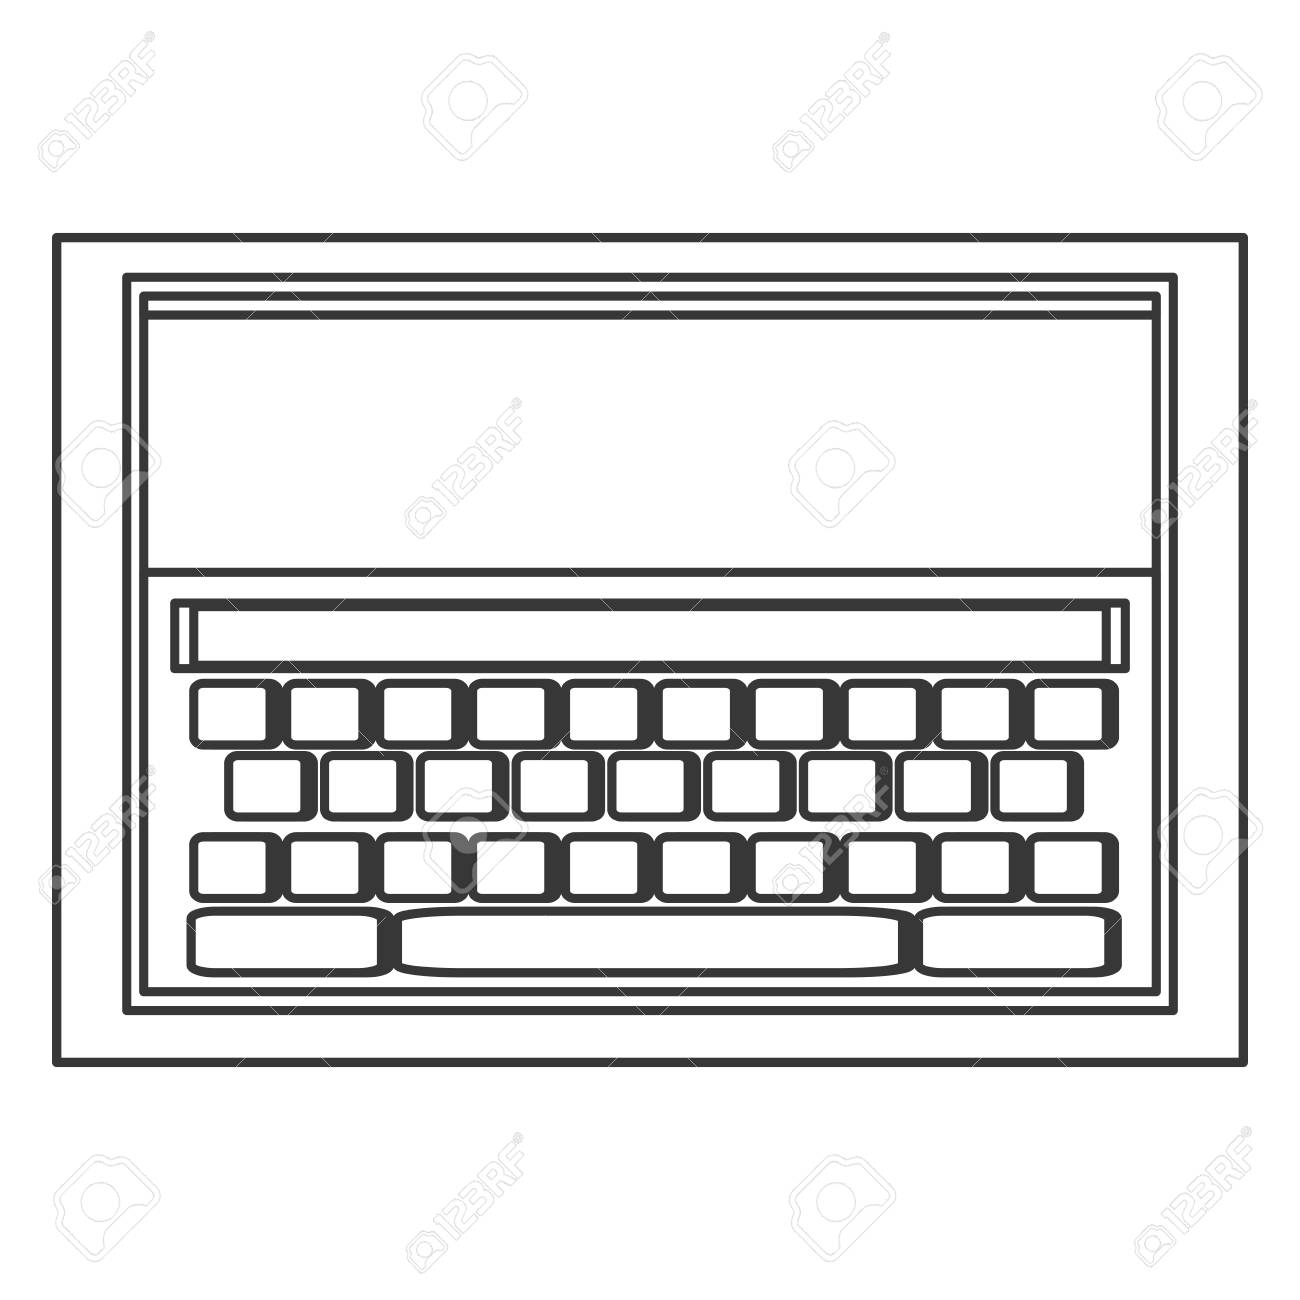 simple line design tablet with keyboard on screen icon vector